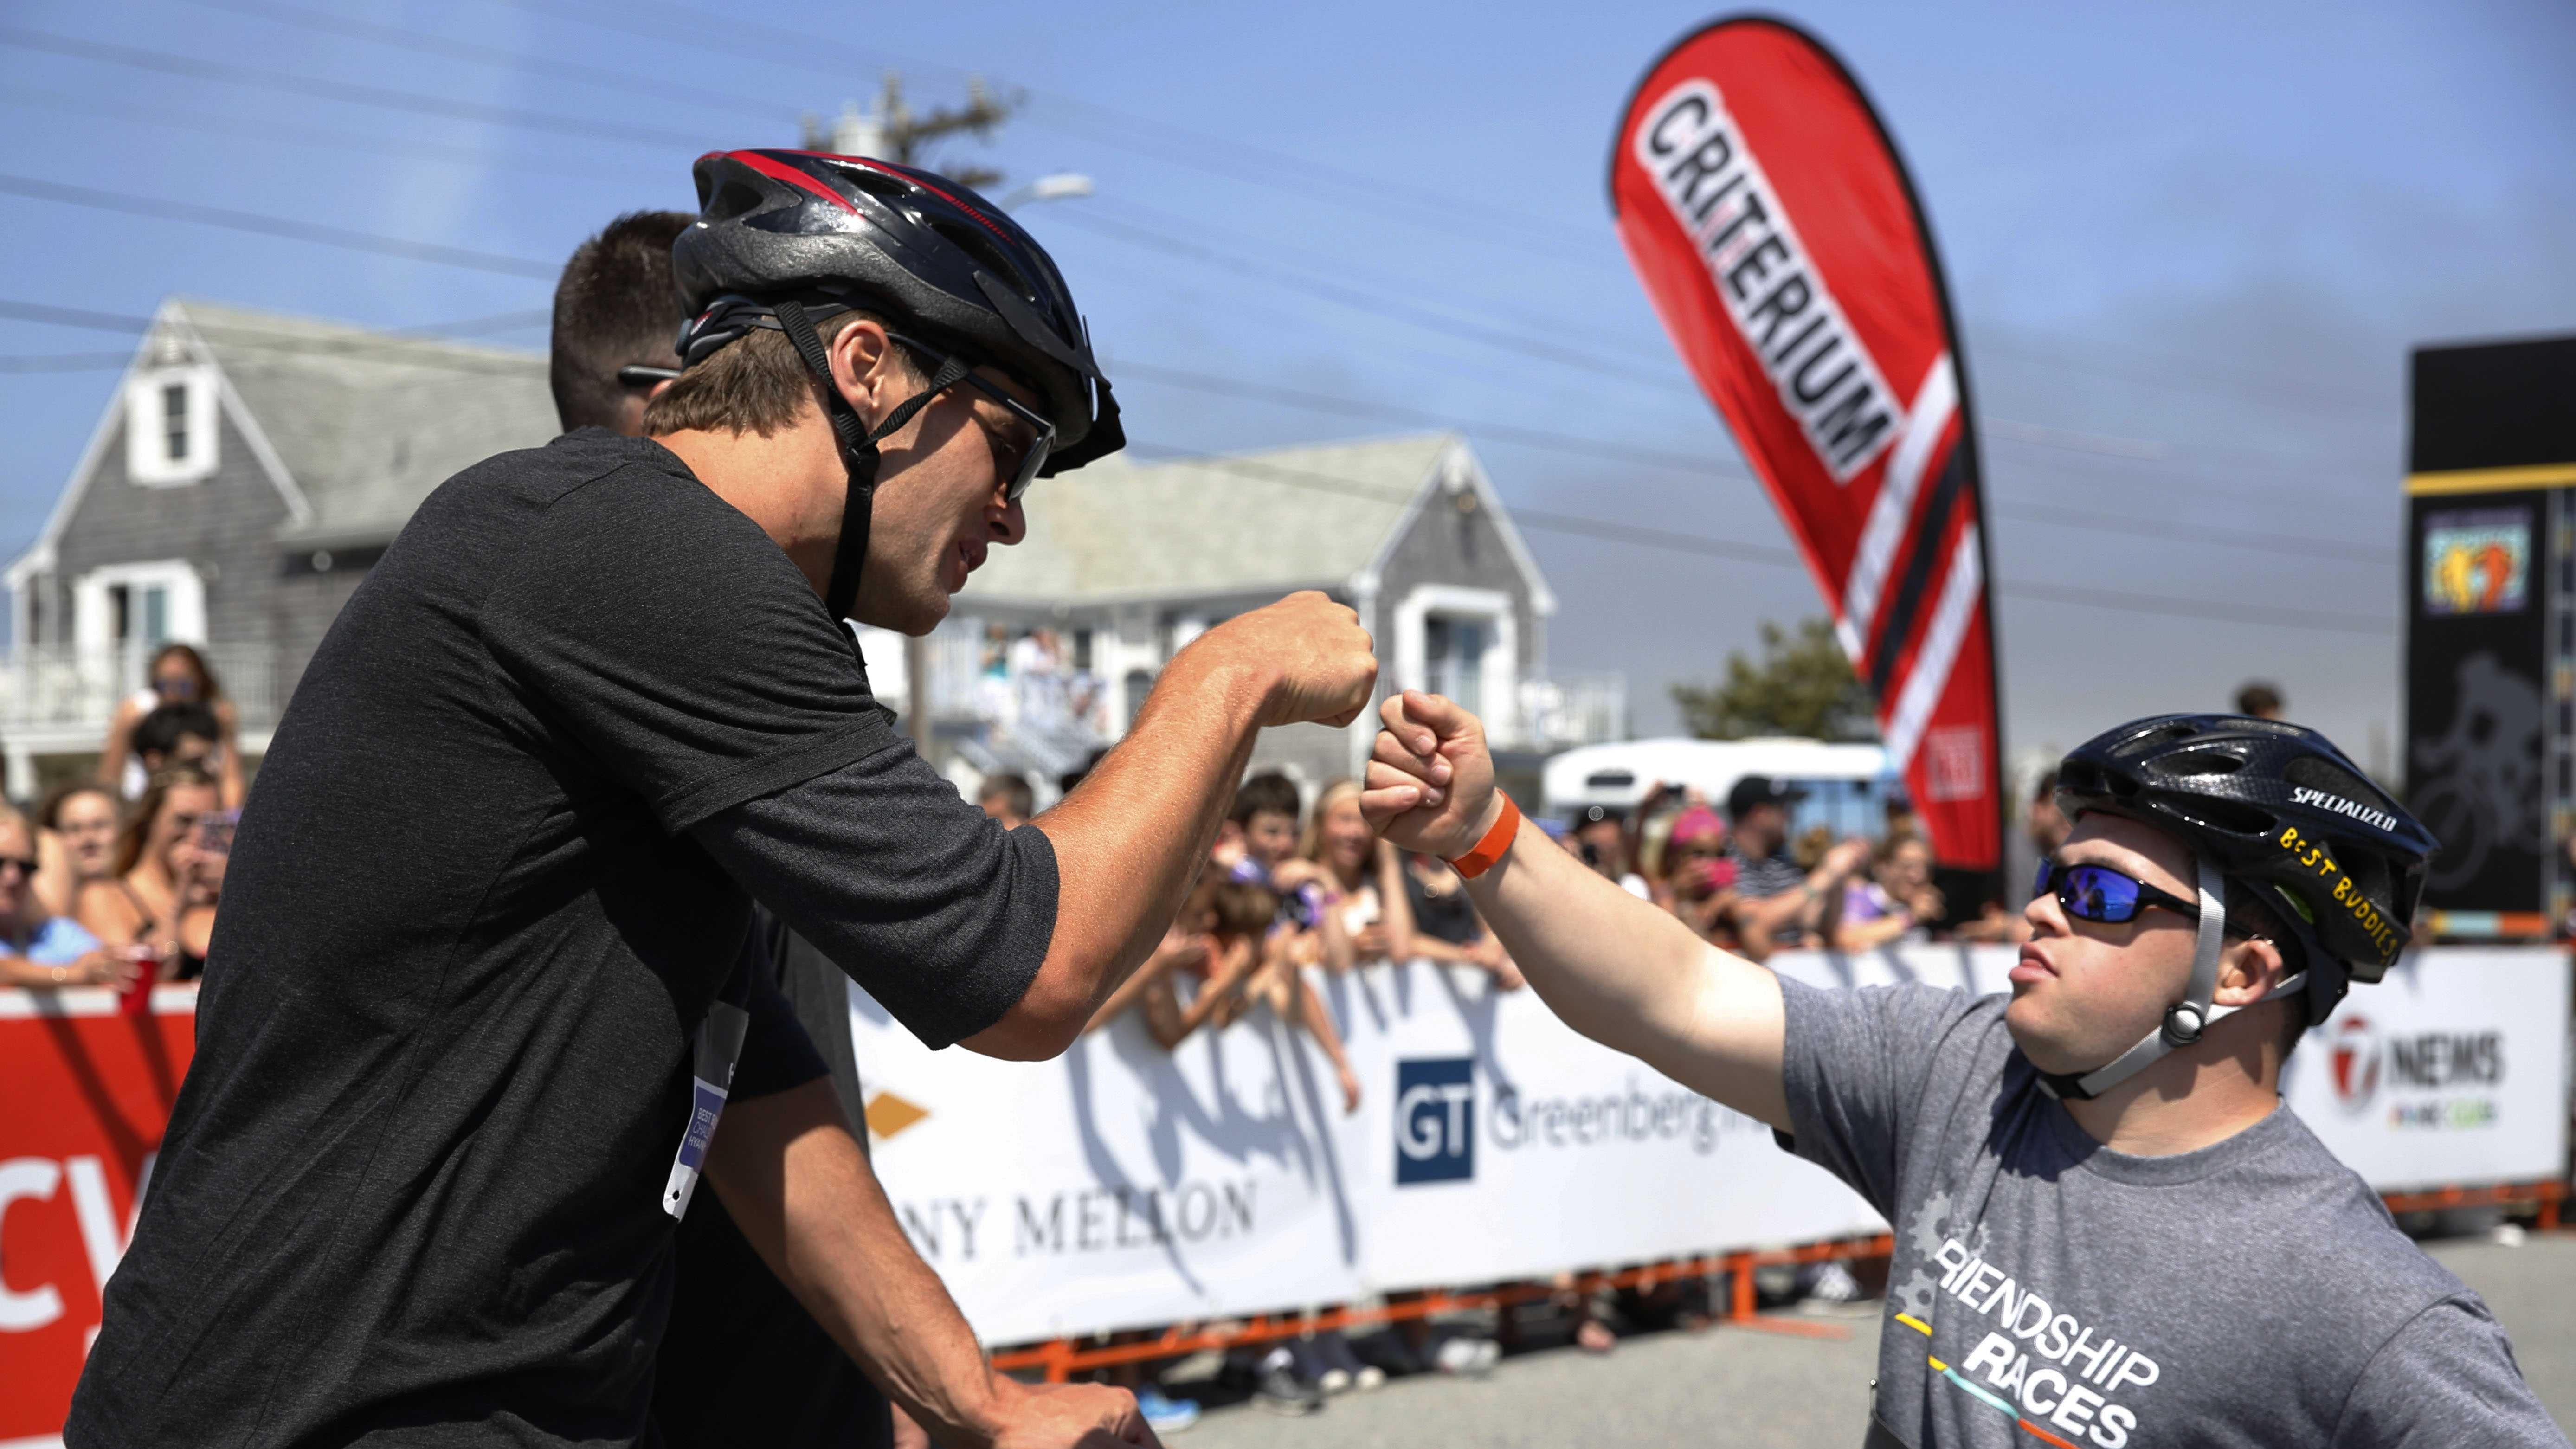 Tom Brady and his race partner, Chris Harrington, 24, prepare to compete in the Best Buddies Friendship Races at Craigville Beach in Centerville, Mass. on Saturday, May 30, 2015. The races were held as part of The 16th Annual Best Buddies Challenge event.